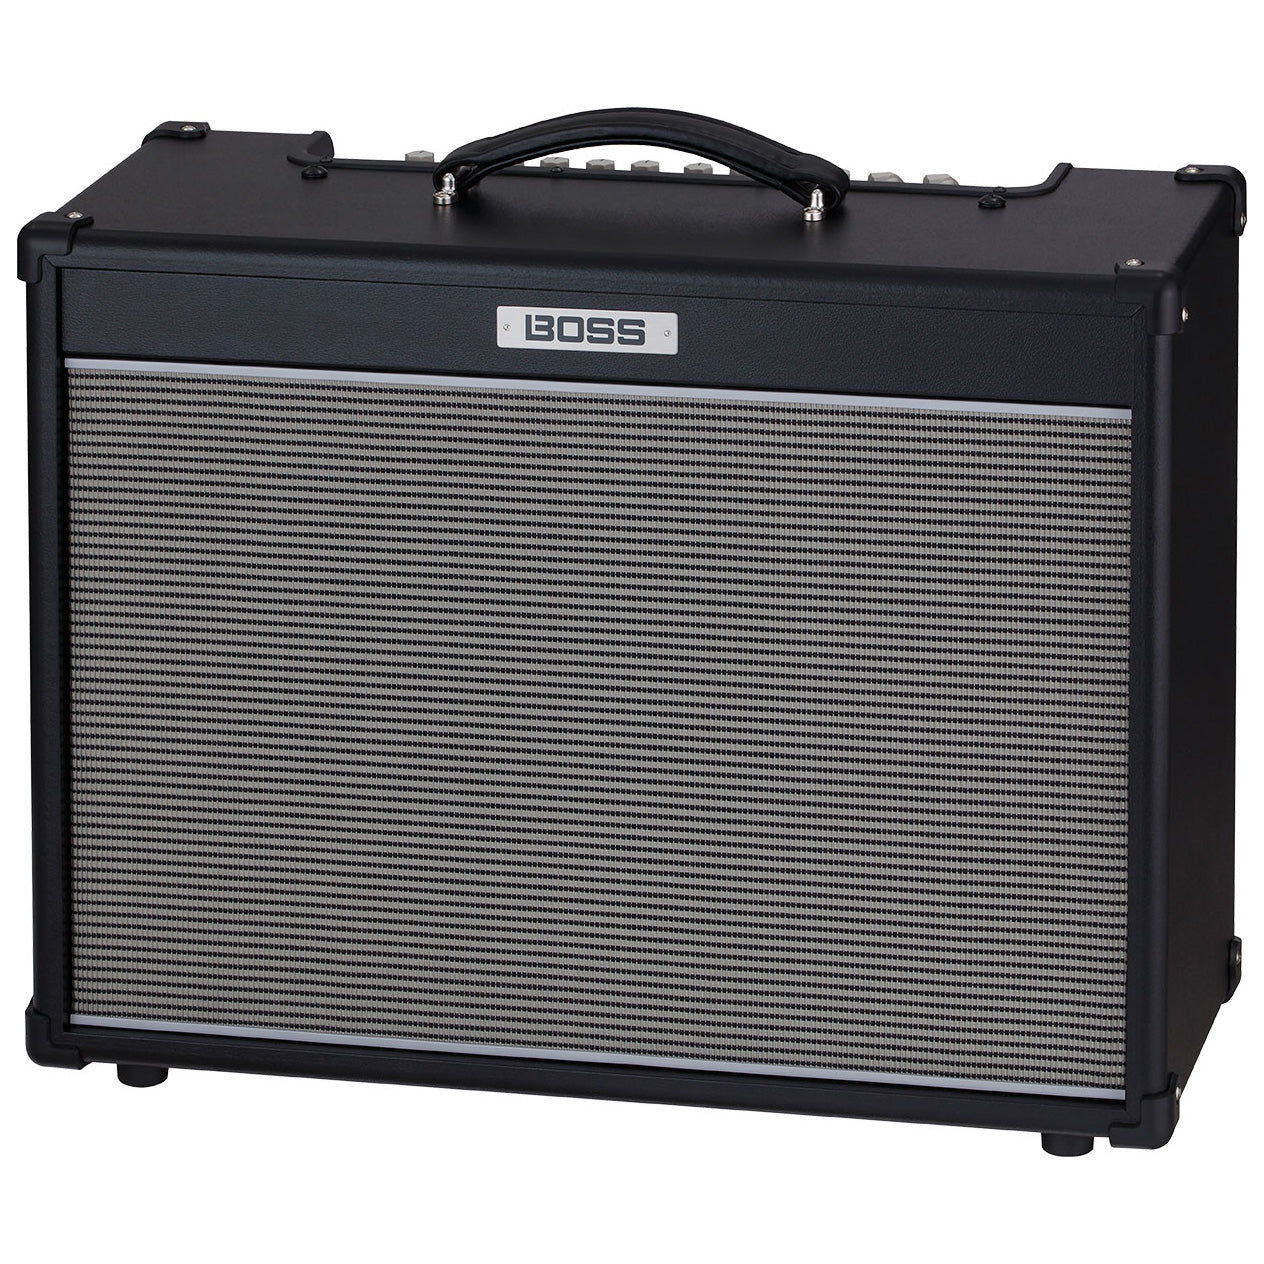 Boss Nextone Artist 80W 1x12 Guitar Combo Amplifier